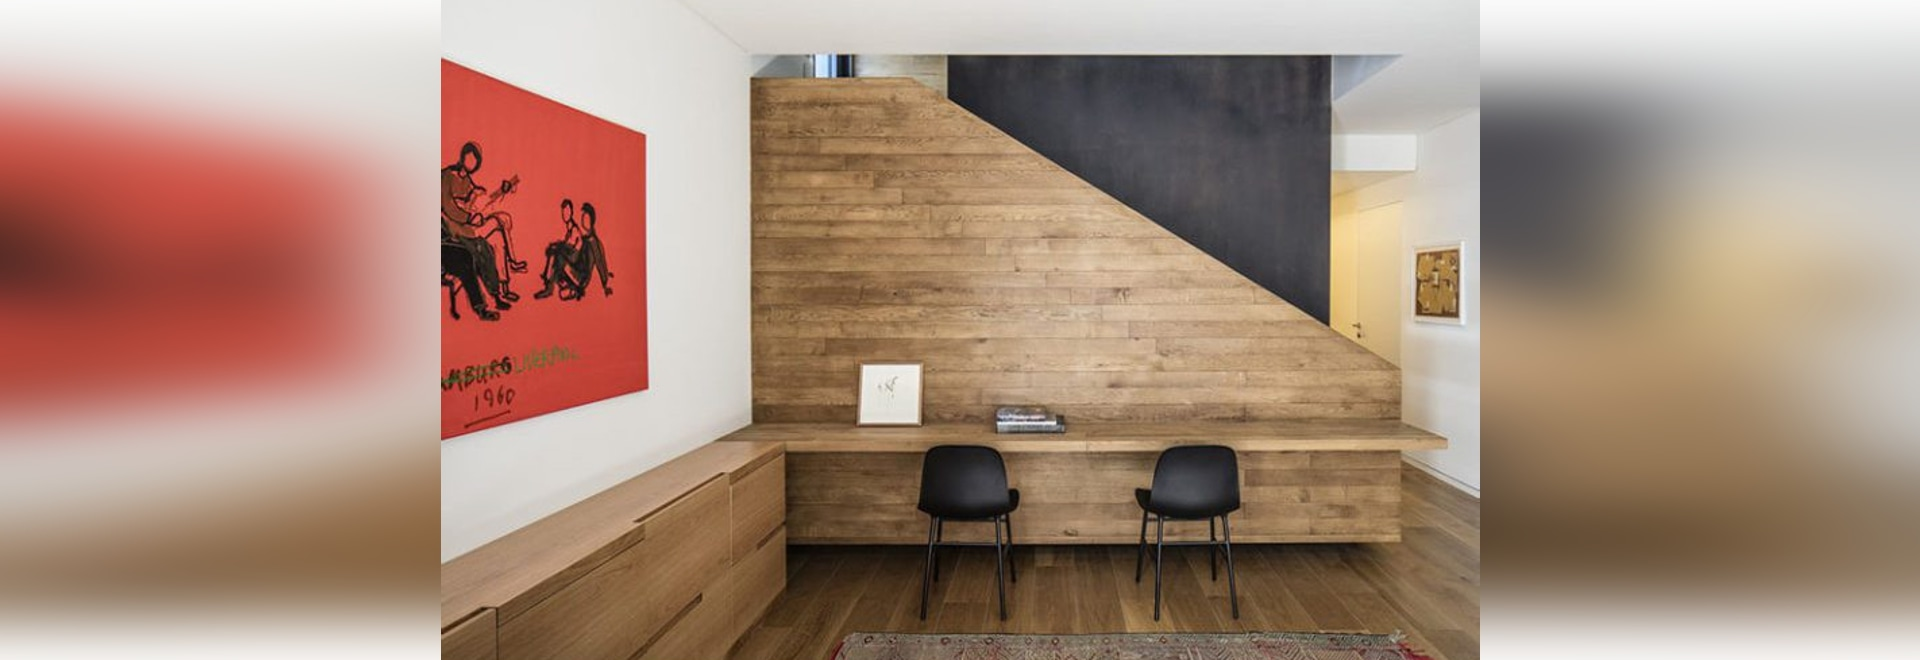 Interior Design Ideas – Build A Desk On An Unused Wall Space